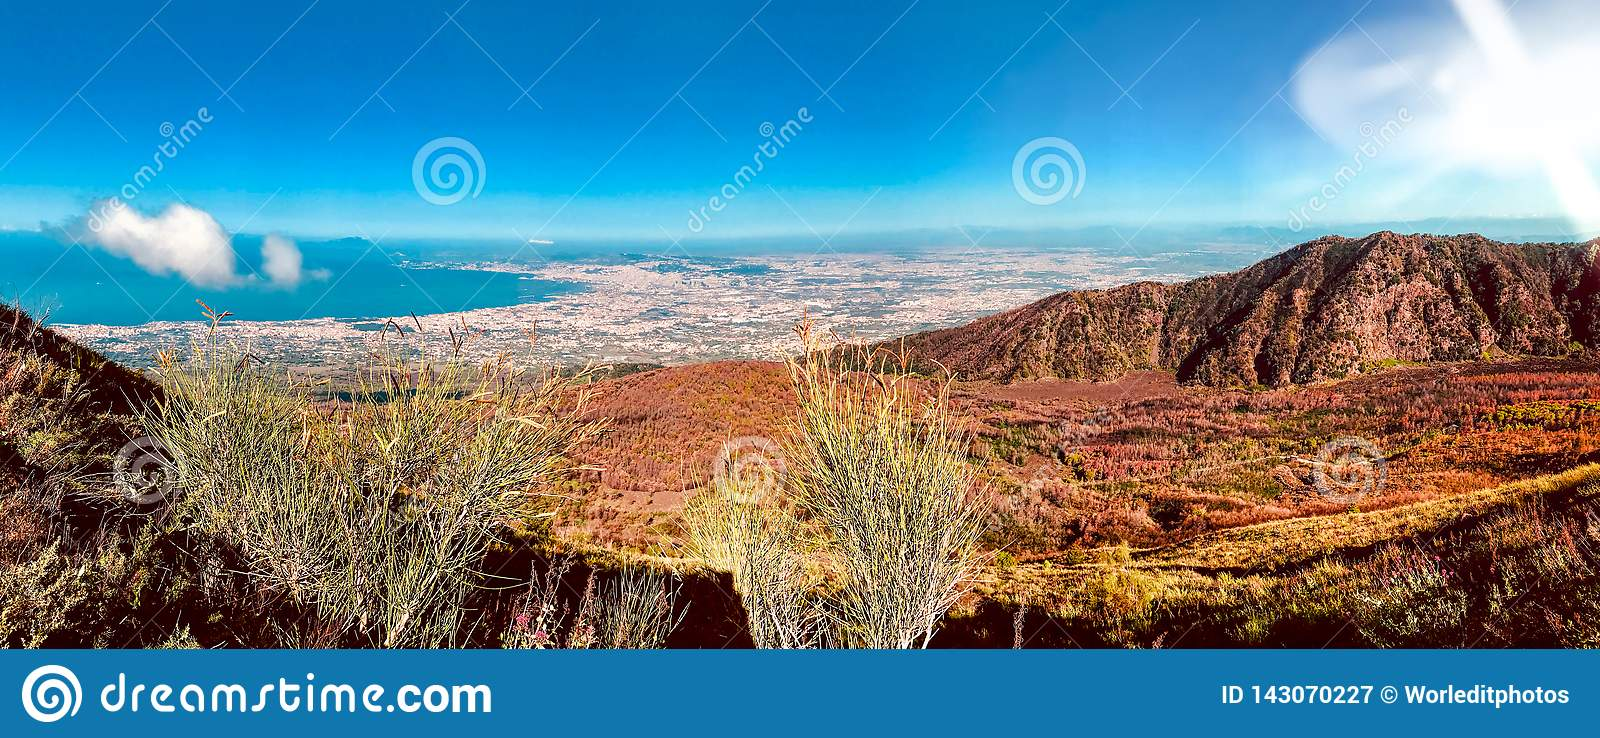 Views of landscape from the route to Mount Vesuvius in Naples, Italy